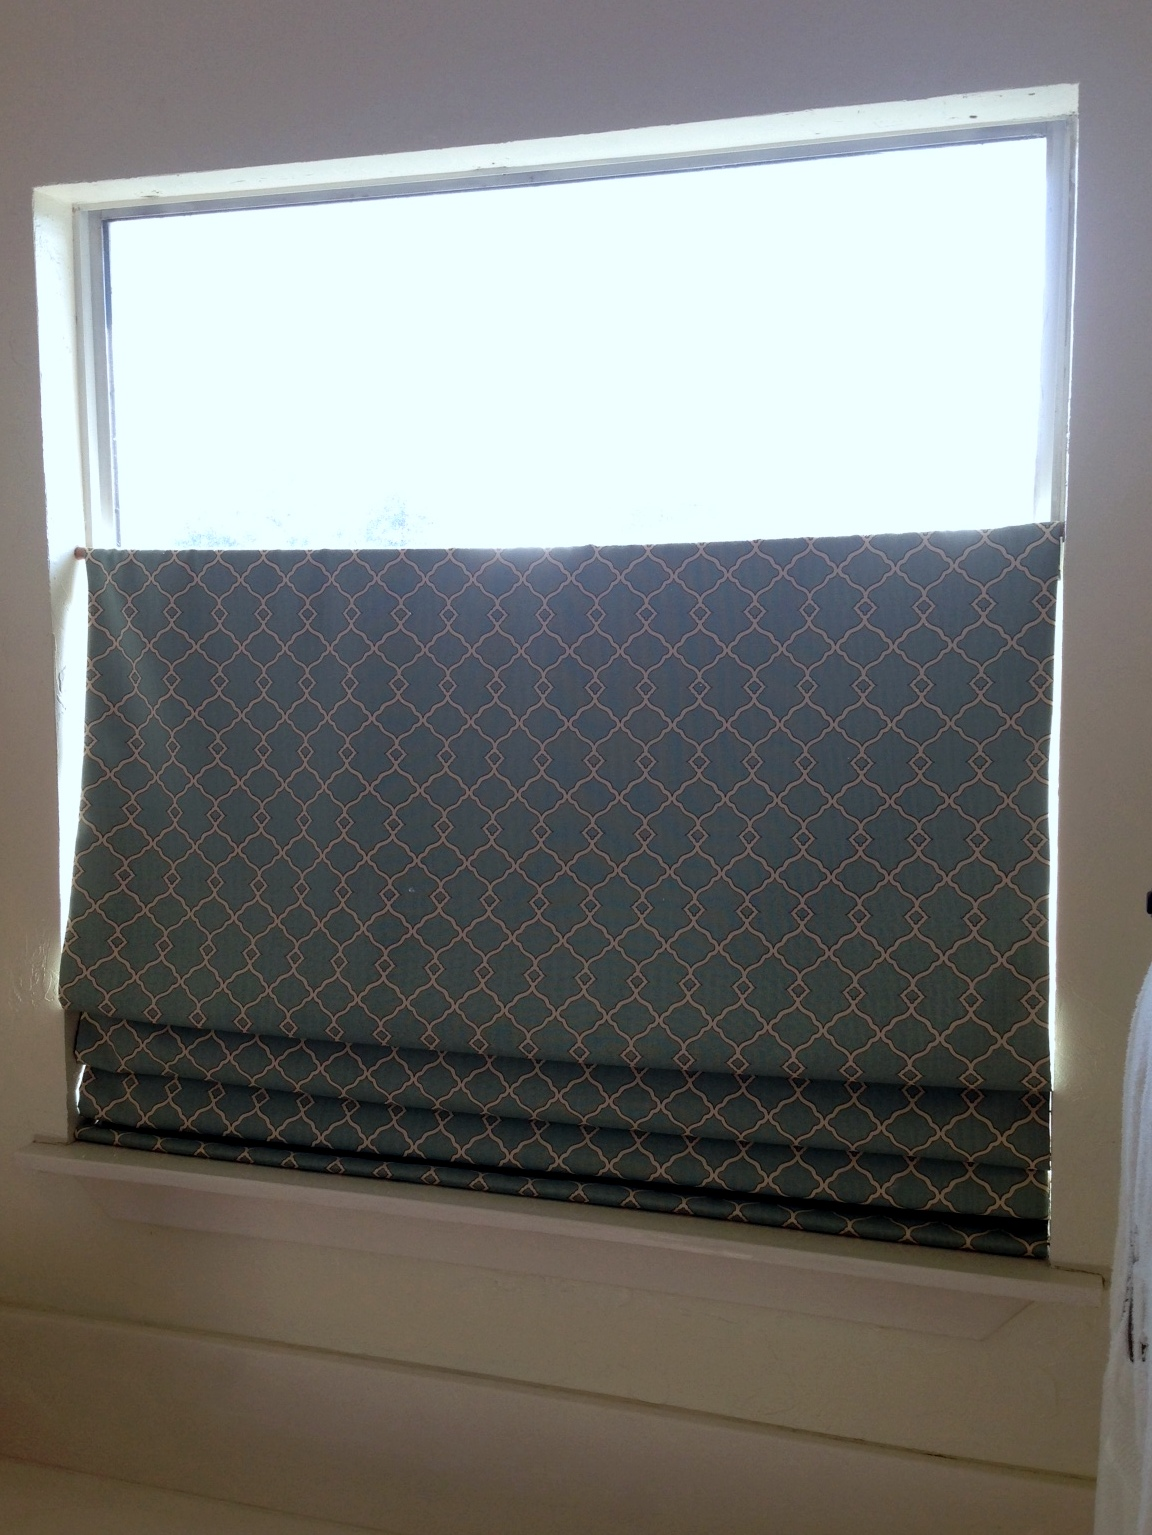 Mind No Sew Down Bottom Up Shade After No Sew Diy Shade A Nest Down Bottom Up Roman Shade Hardware Levolor Down Bottom Up Roman Shades houzz-03 Top Down Bottom Up Roman Shades